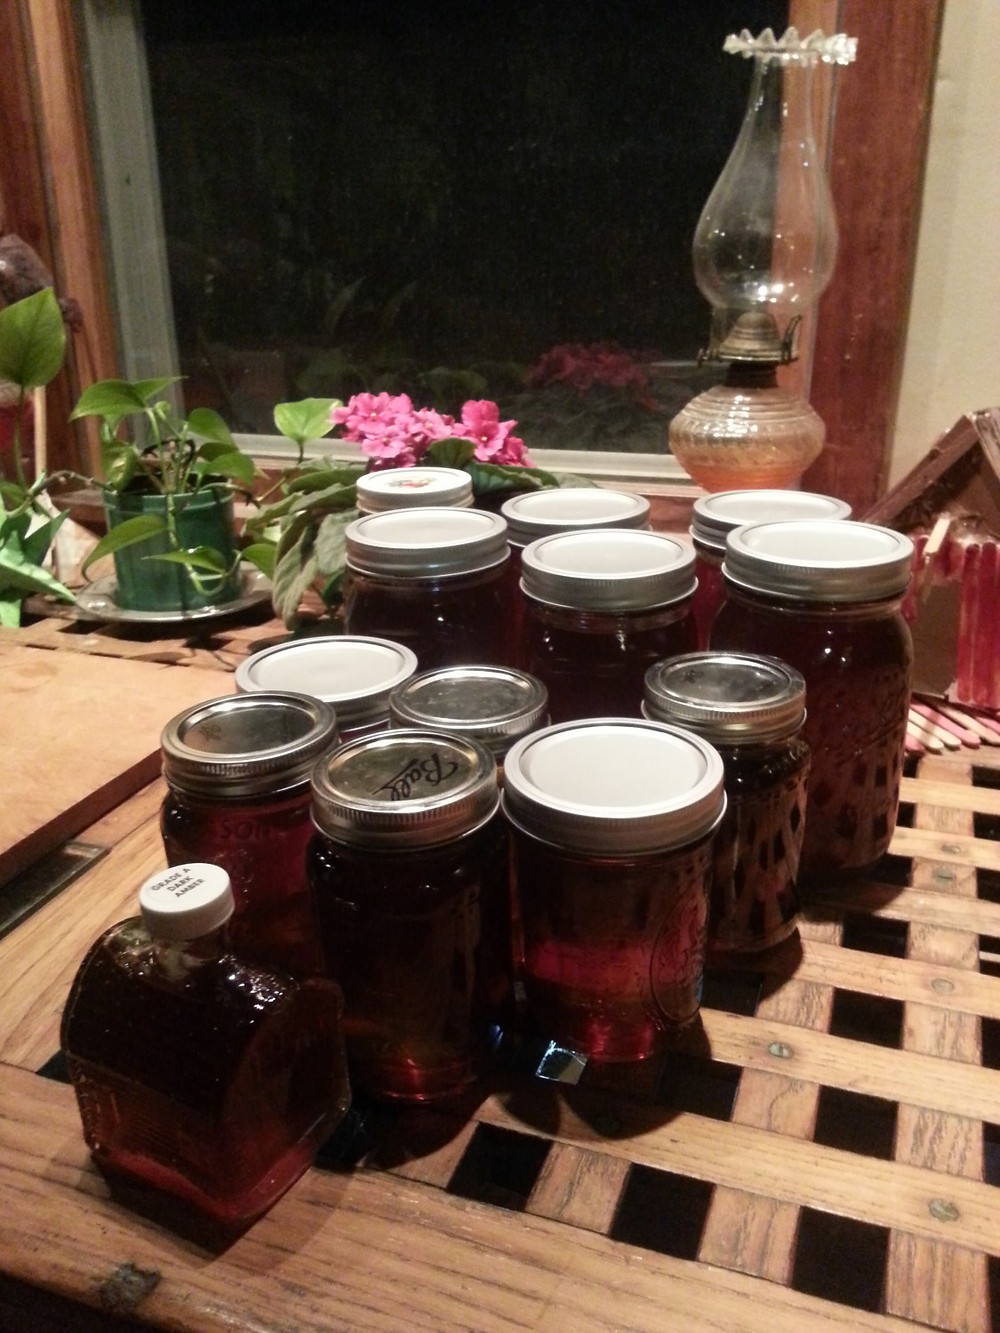 maine windjammer, maine maple syrup, good deal of windjammer cruises, free maple syrup